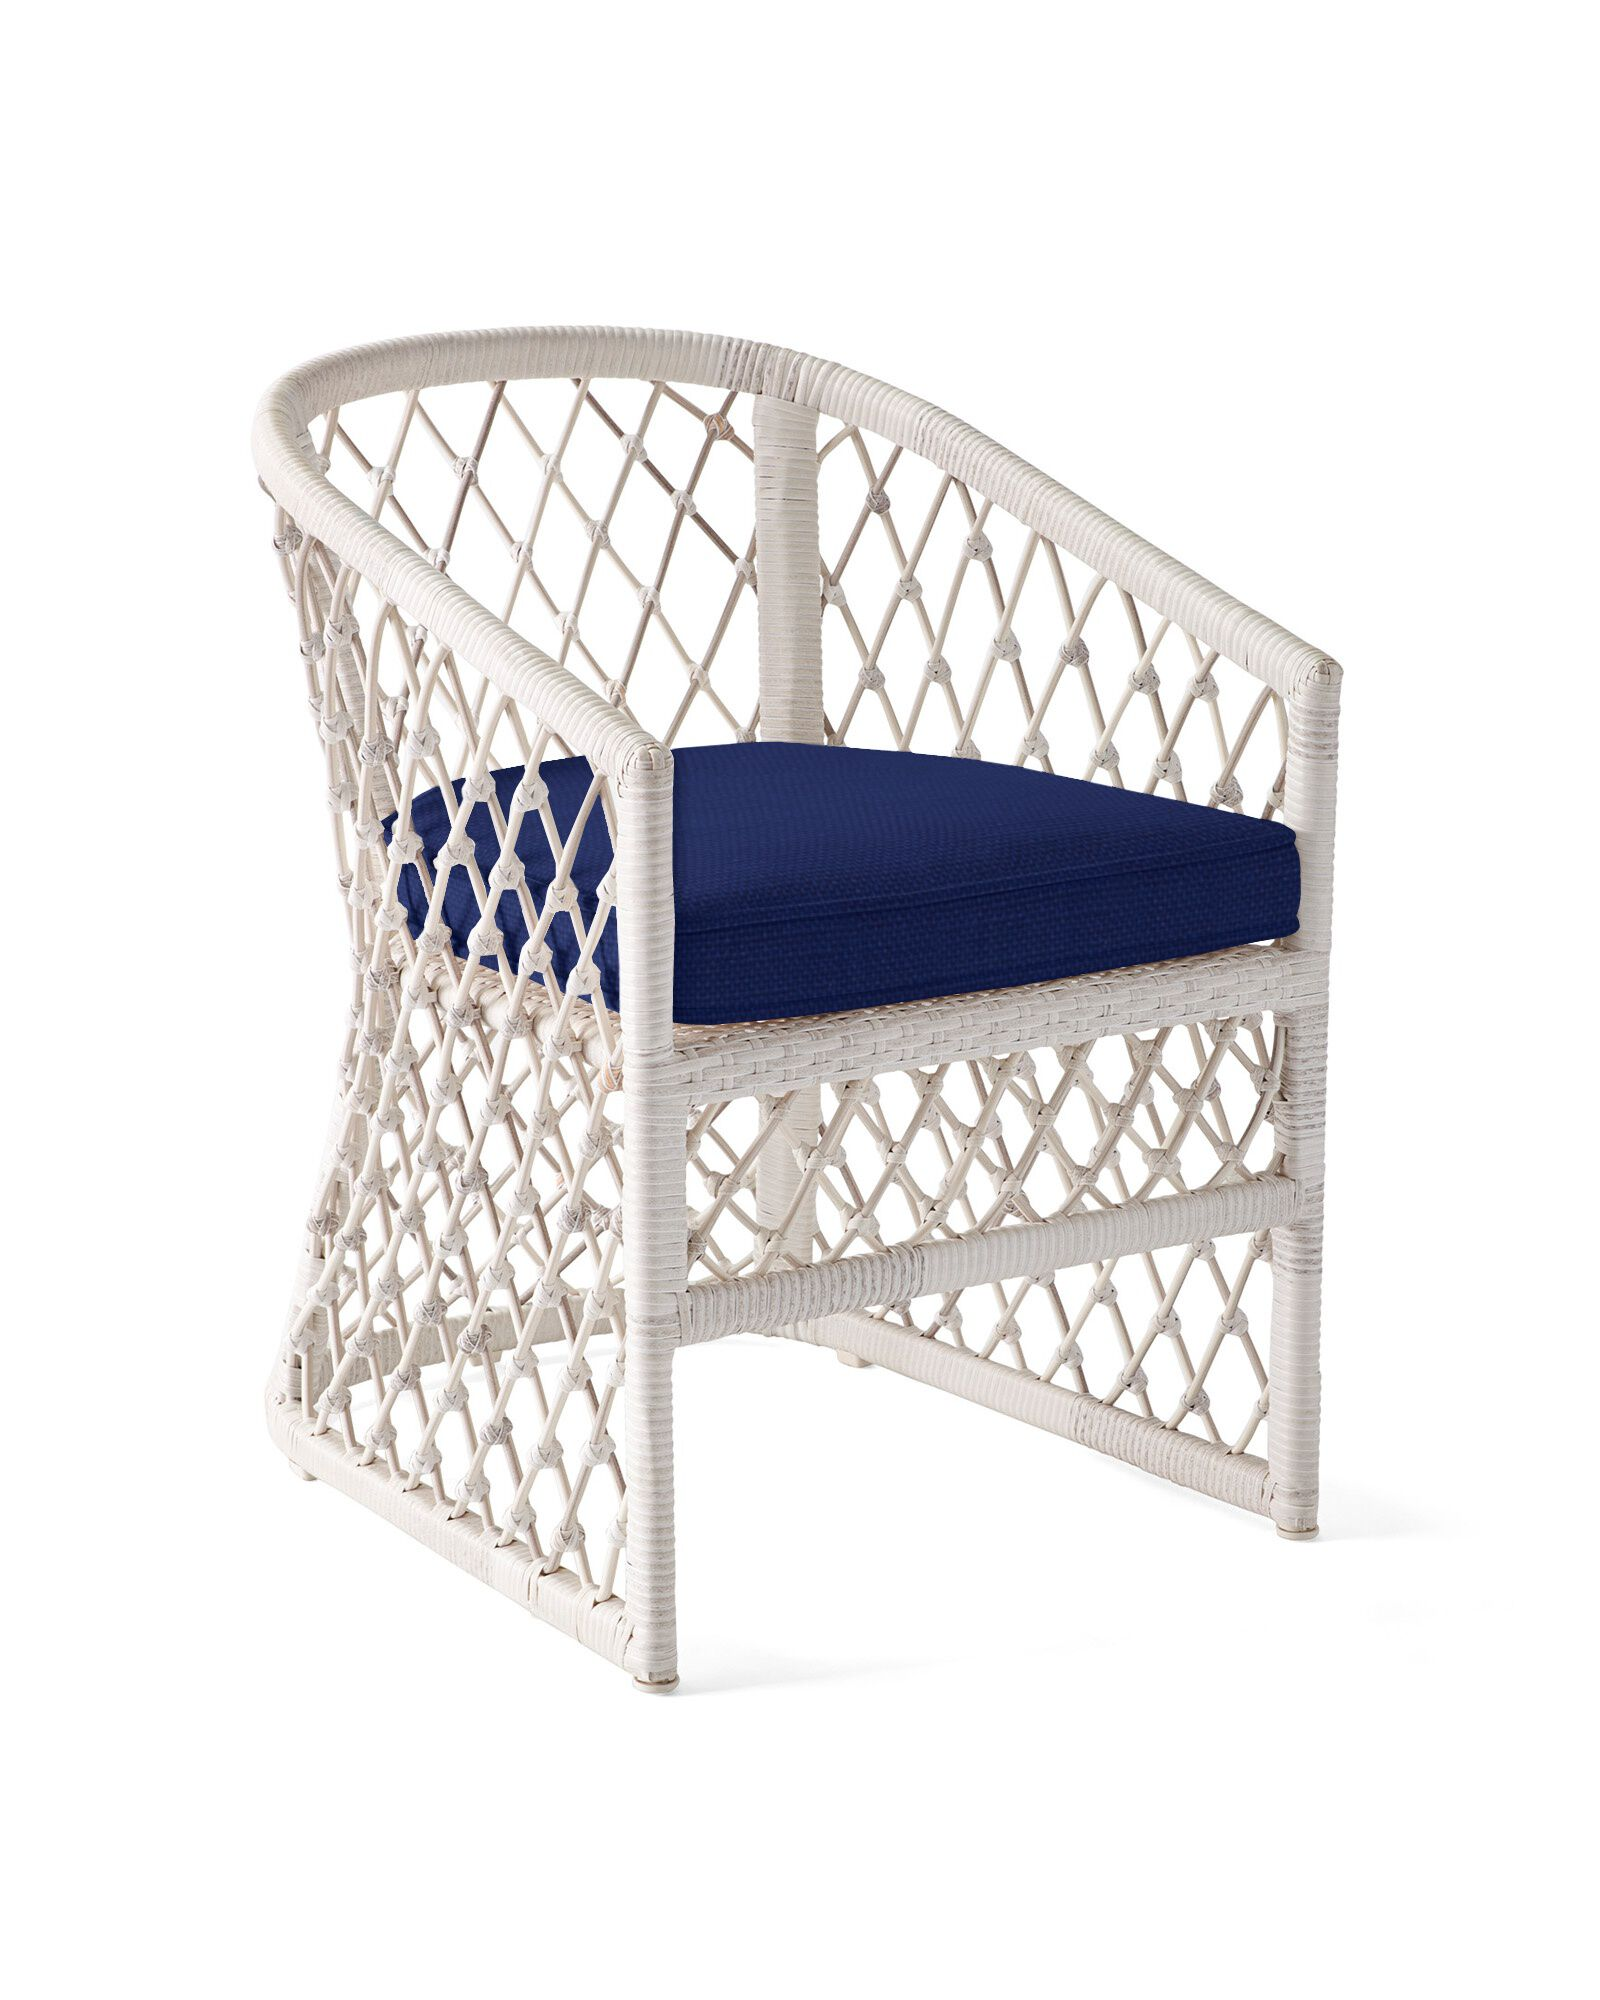 Cushion Cover for Capistrano Dining Chair, Perennials Basketweave Navy